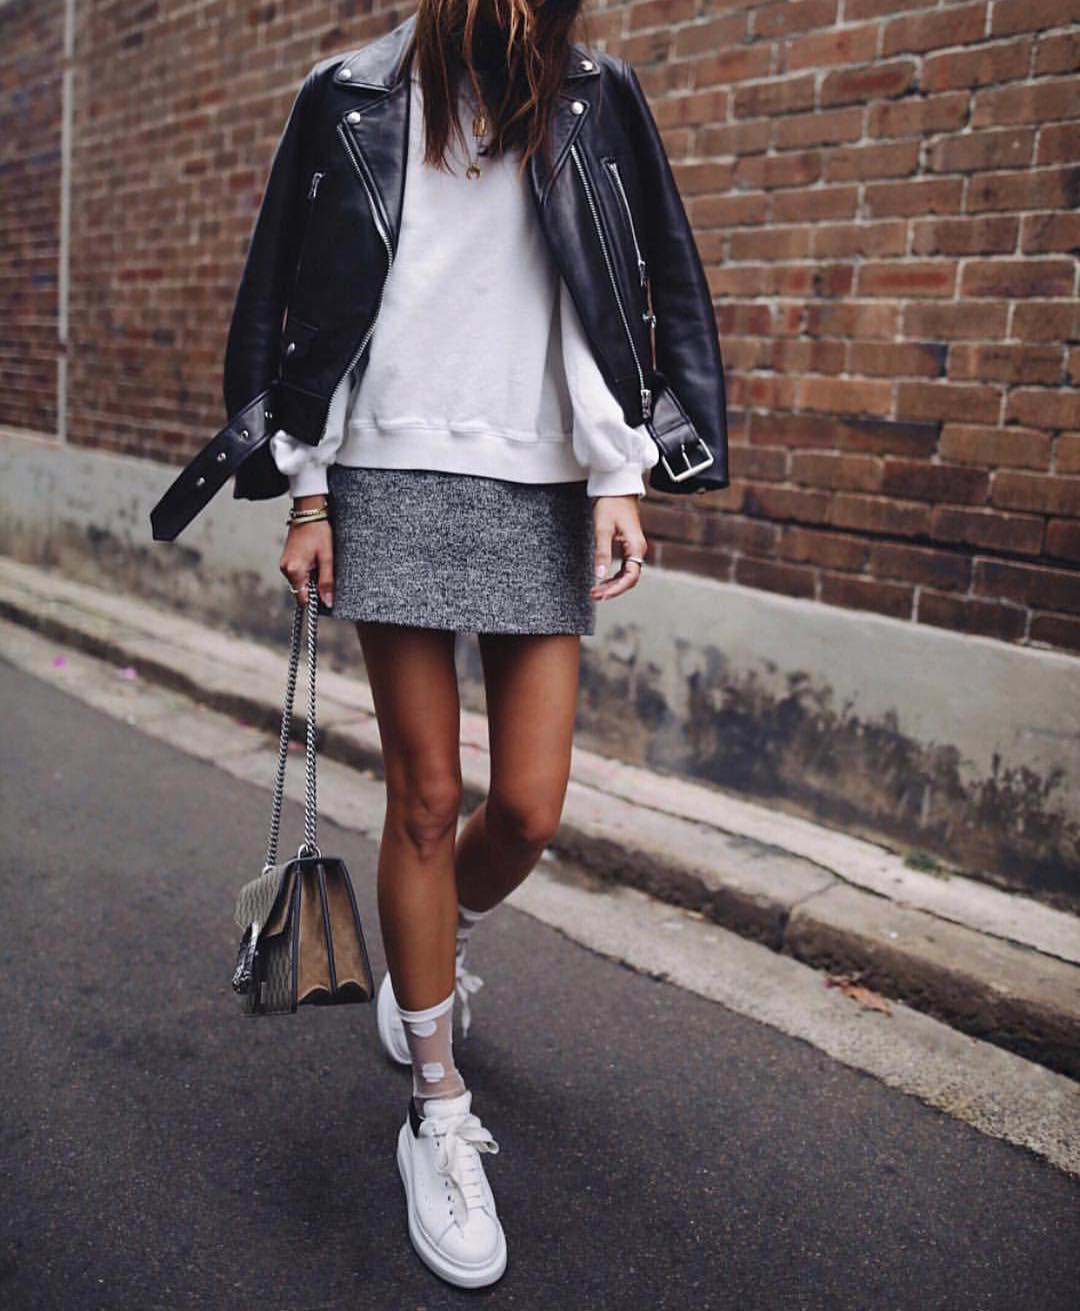 Black Leather Biker Jacket With White Sweatshirt And White Sneakers 2019